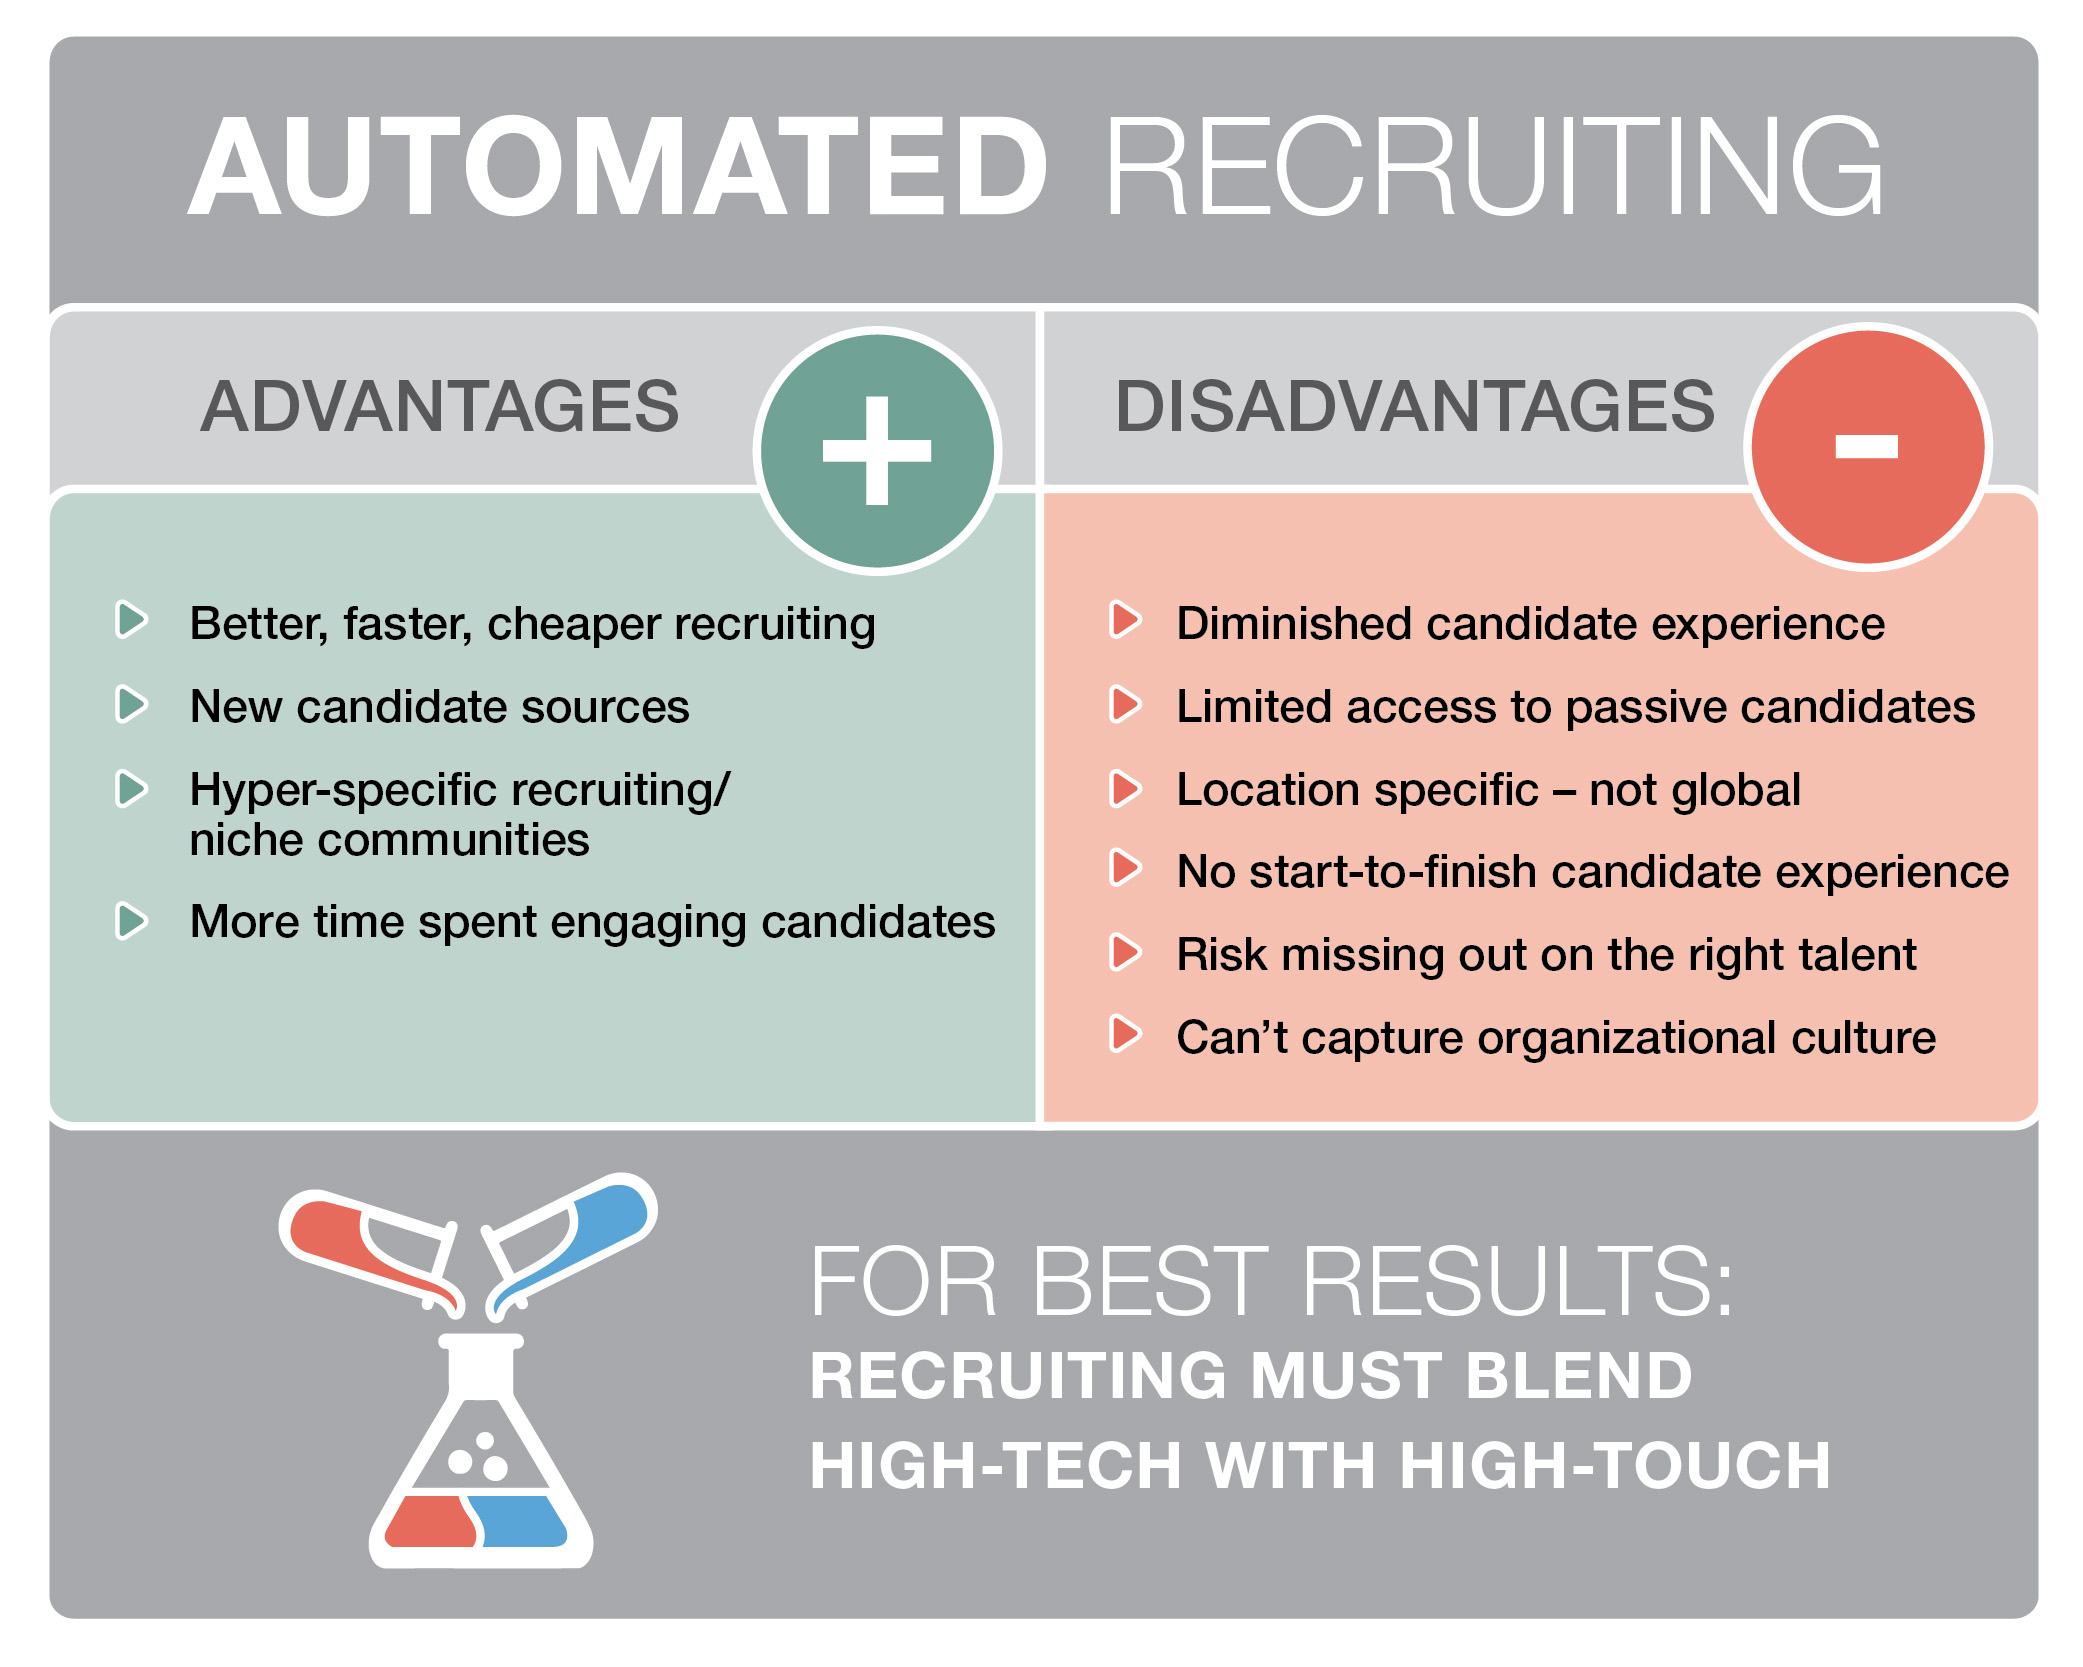 Technology is an enabler: blend it with high-touch human recruiting to create positive candidate experiences and attract the right talent, recommends @MPGrpSolutions.